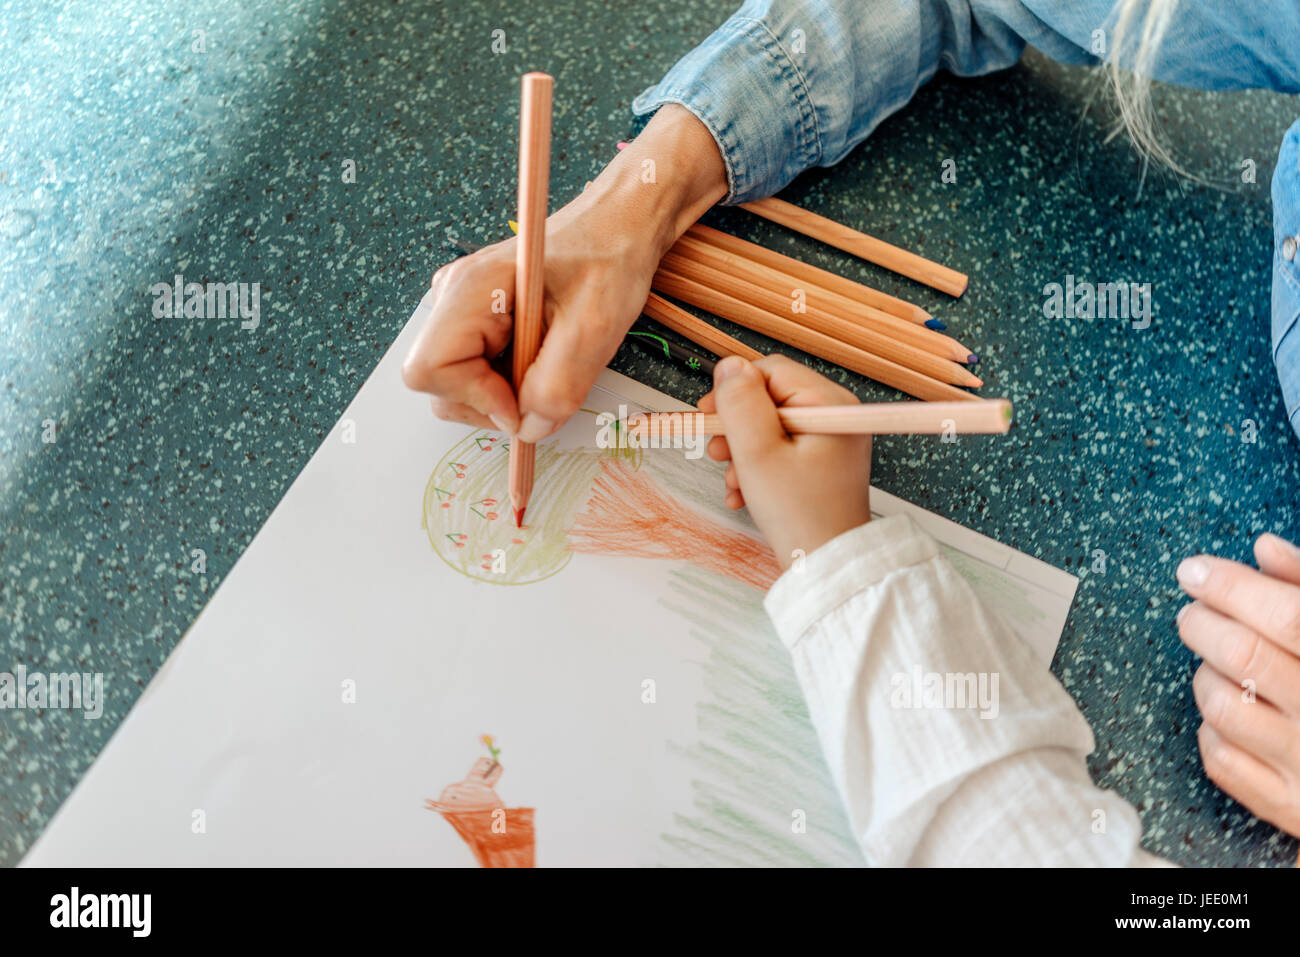 Woman and girl drawing together - Stock Image